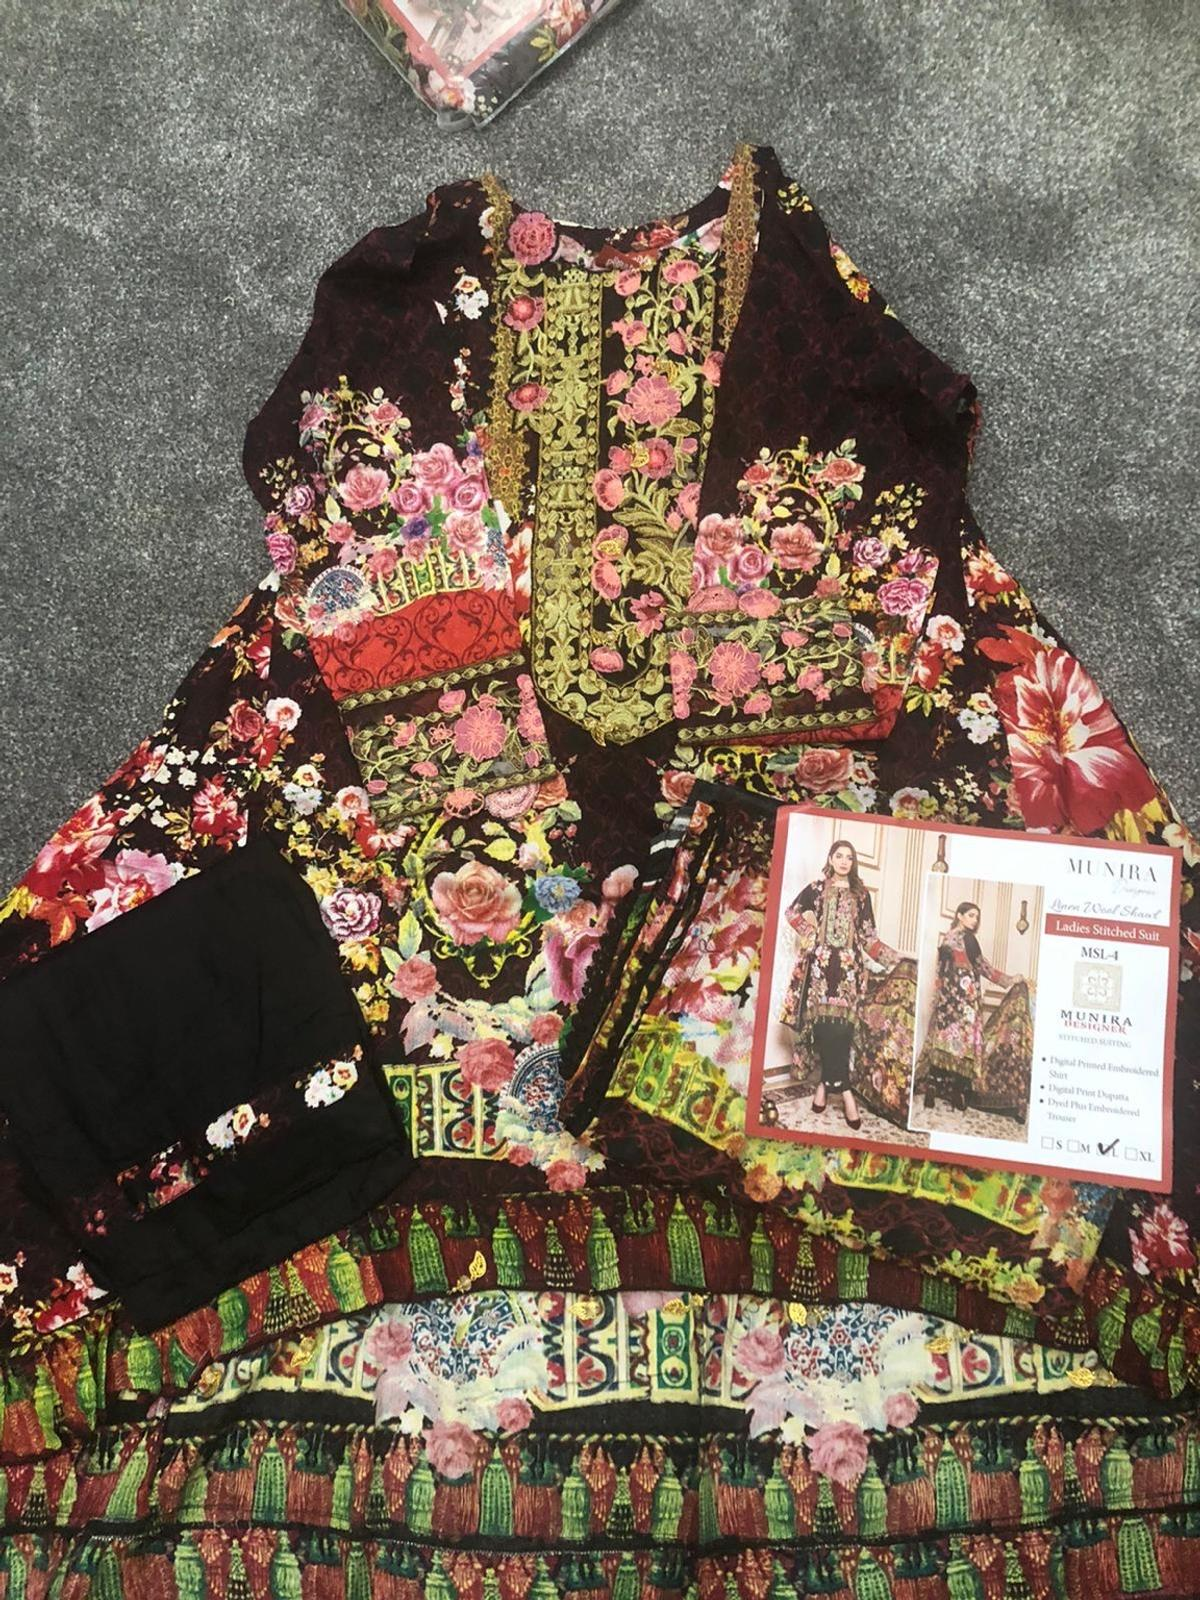 💥SALE...SALE...SALE💥  Various branded designer clothes available in Large size and many more sizes. Fancy Embroidered designer airline dresses.  Delivery available at a radius of 15 miles, P&P fees may apply. For more information you can call, WhatsApp, email or drop a text will be happy to help.  Happy Shopping.